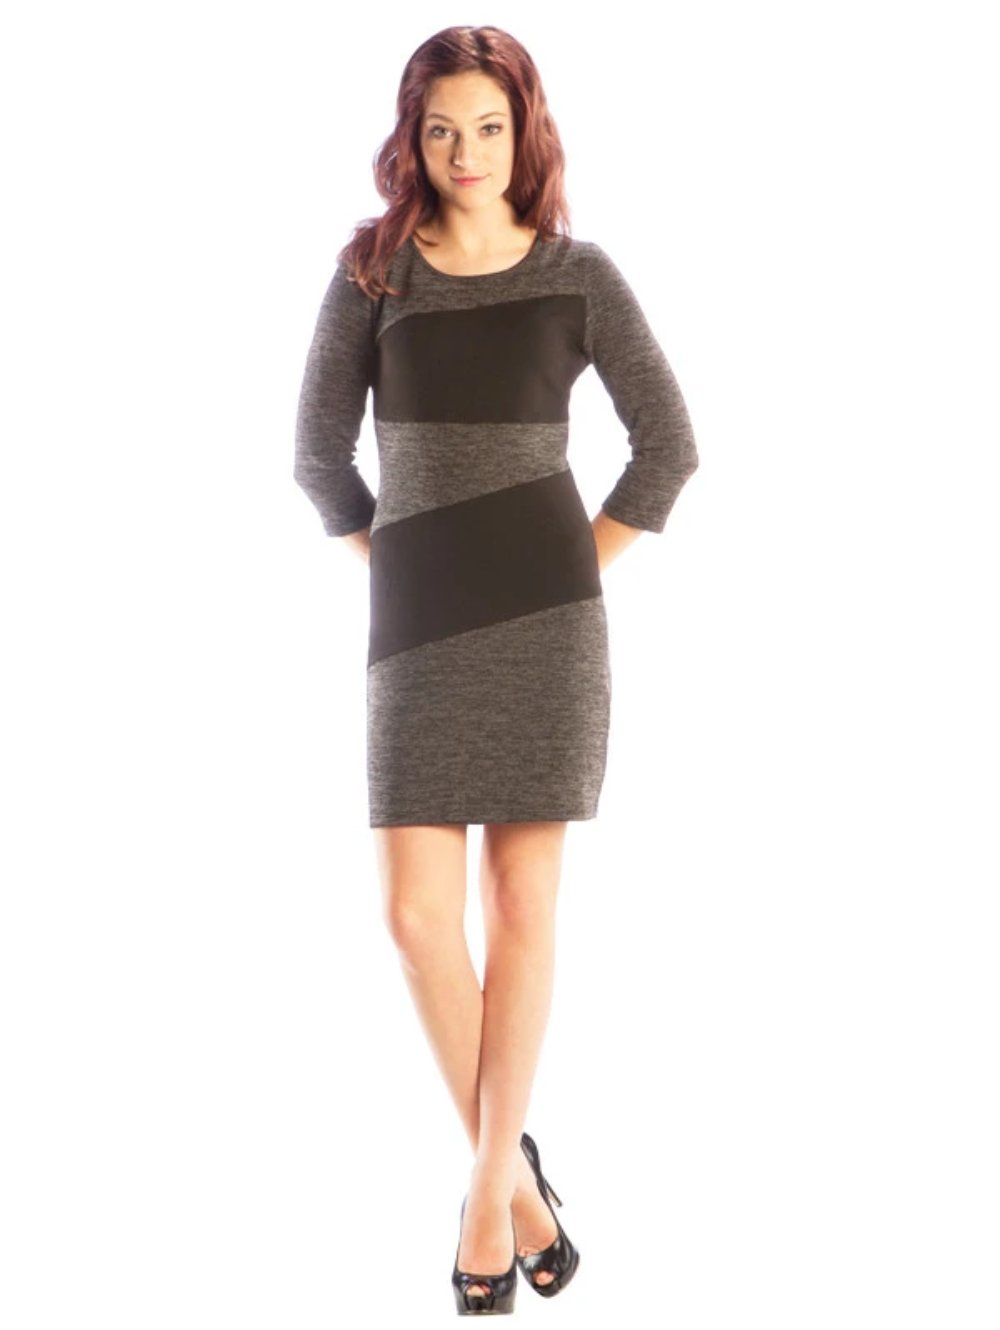 Color Block Sweater Sheath Dress with 3/4 Length Sleeves, Charcoal